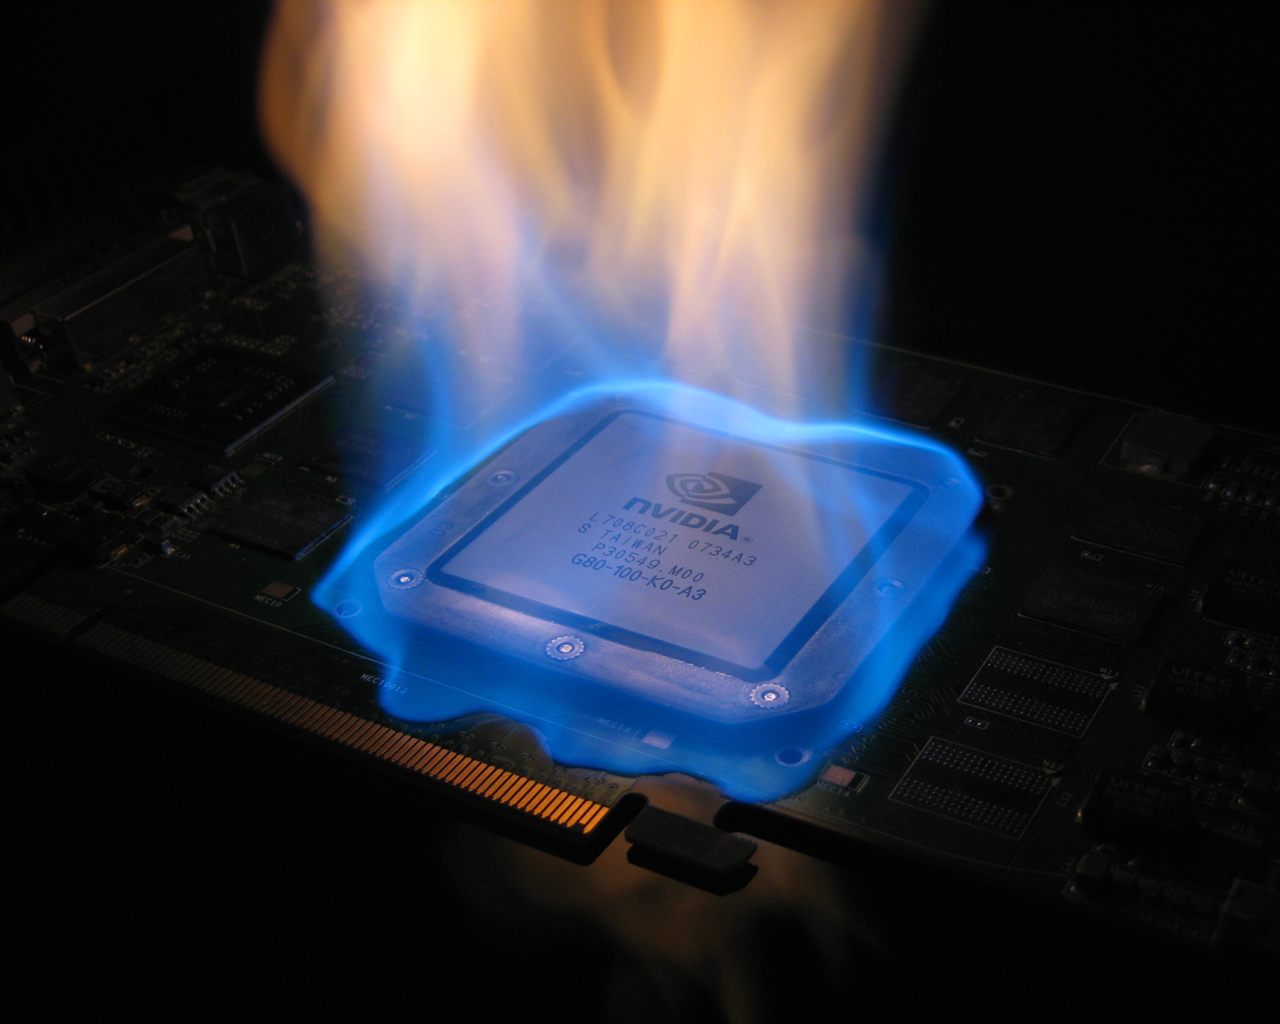 NVidia chipset on fire